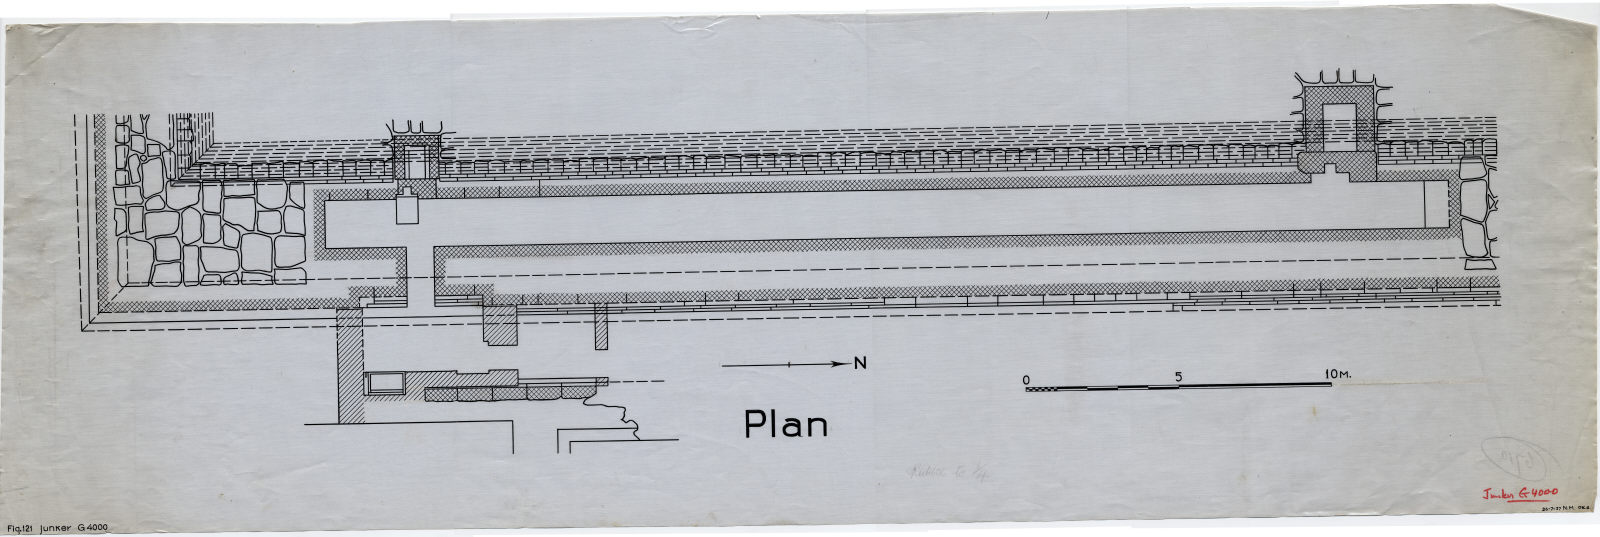 Maps and plans: G 4000, Plan